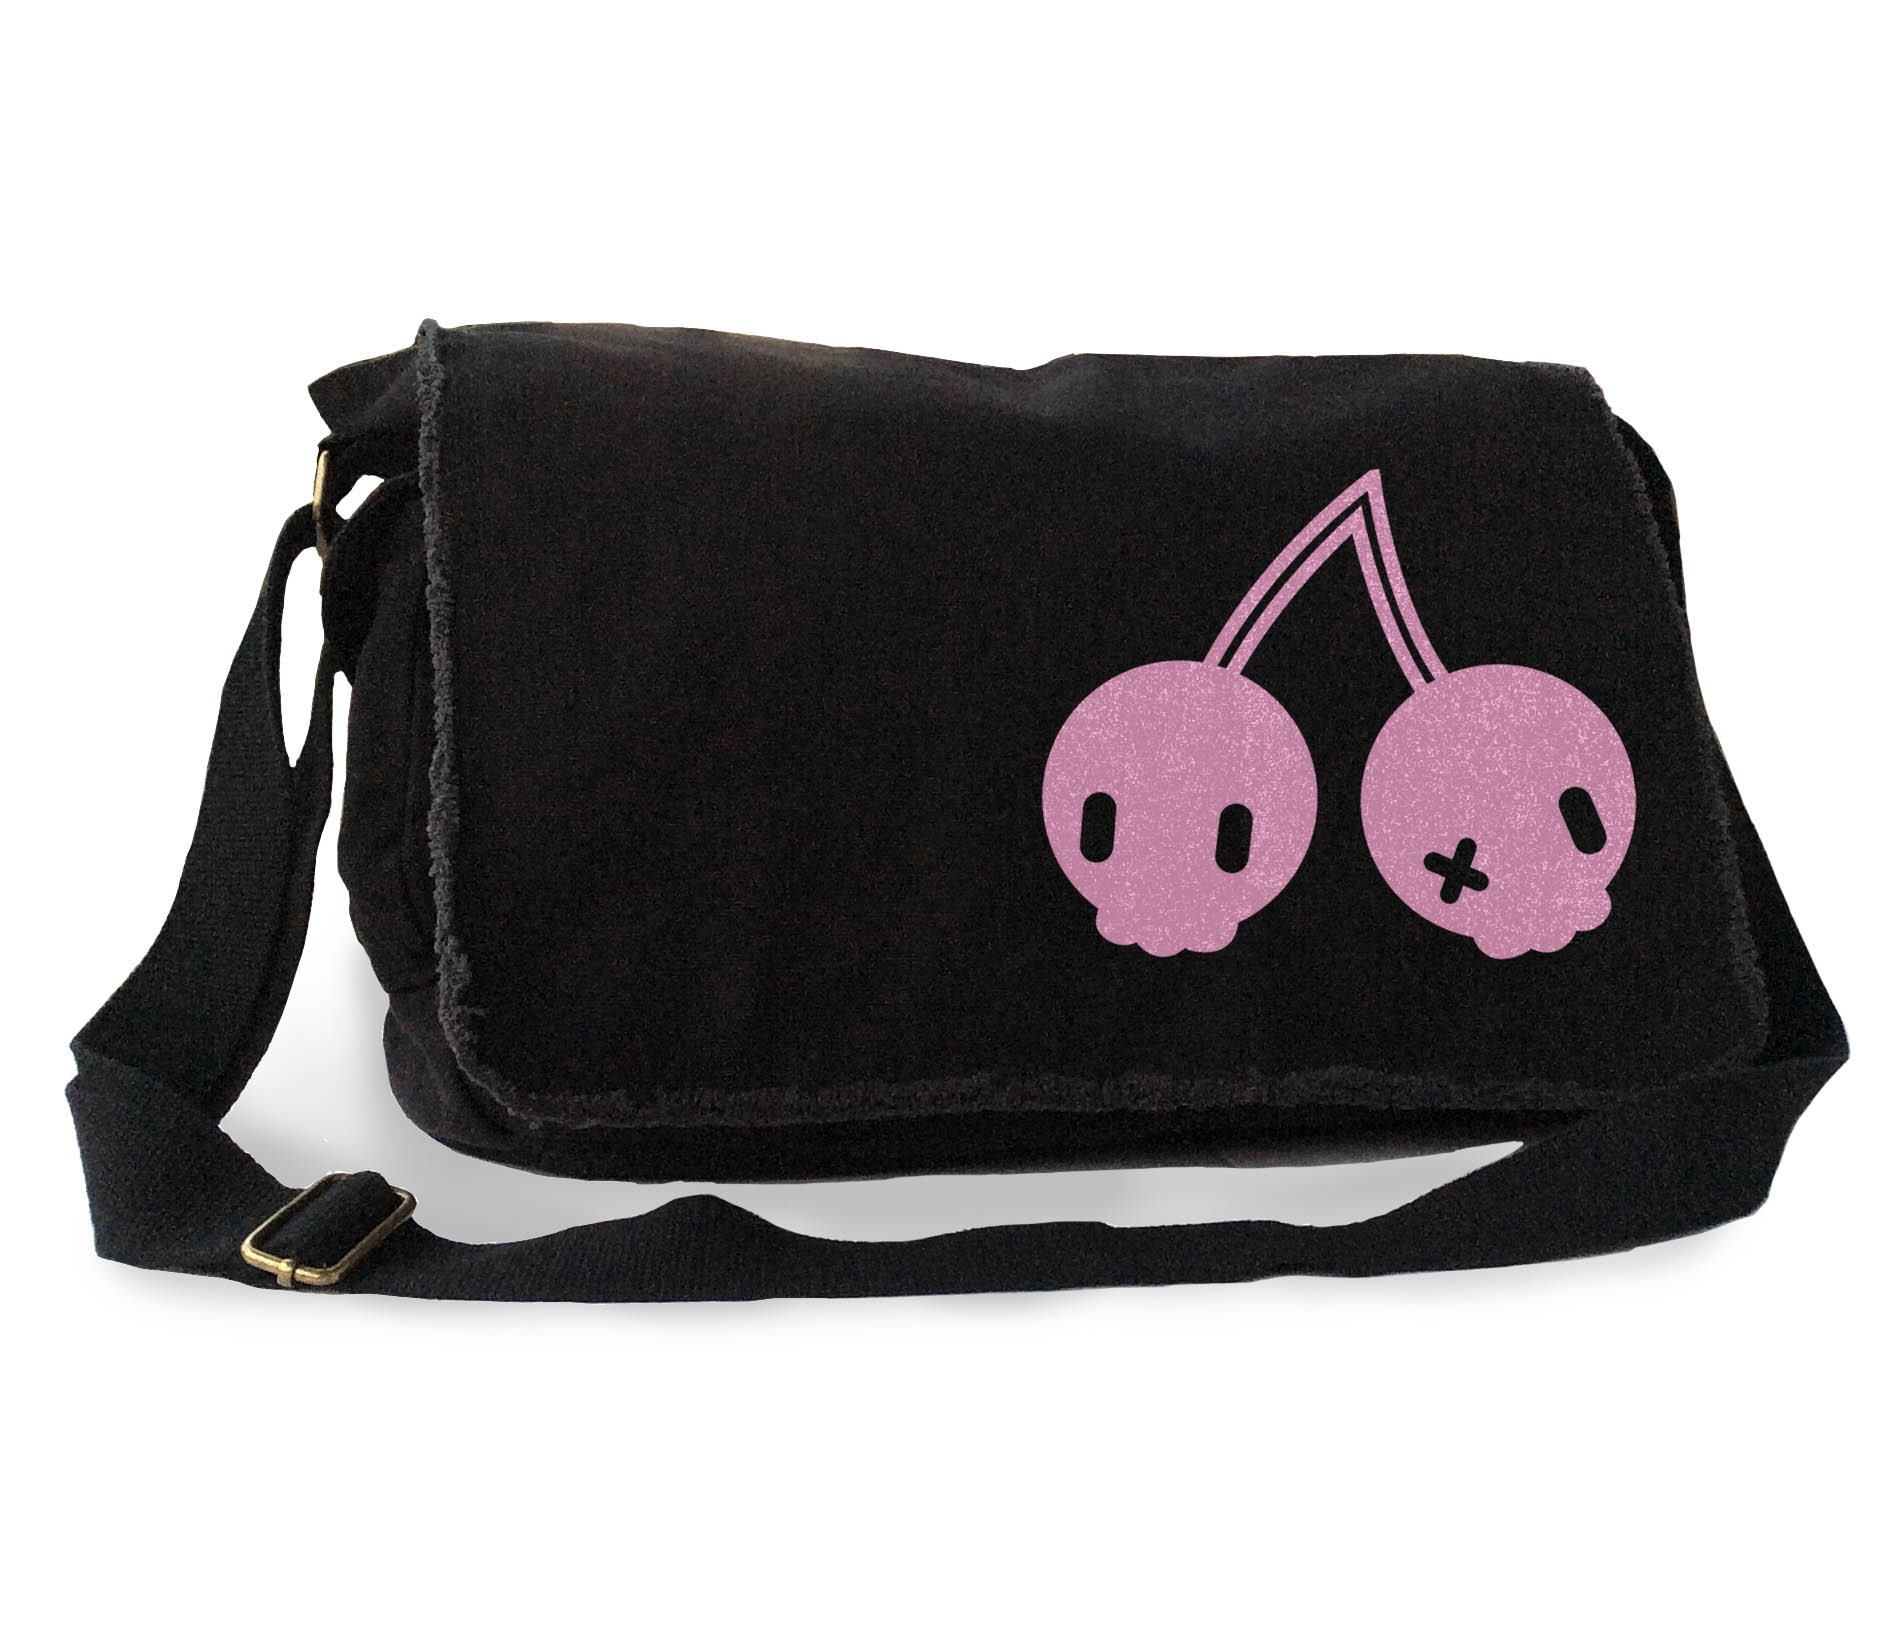 Cherry Skulls Messenger Bag - Pink/Black